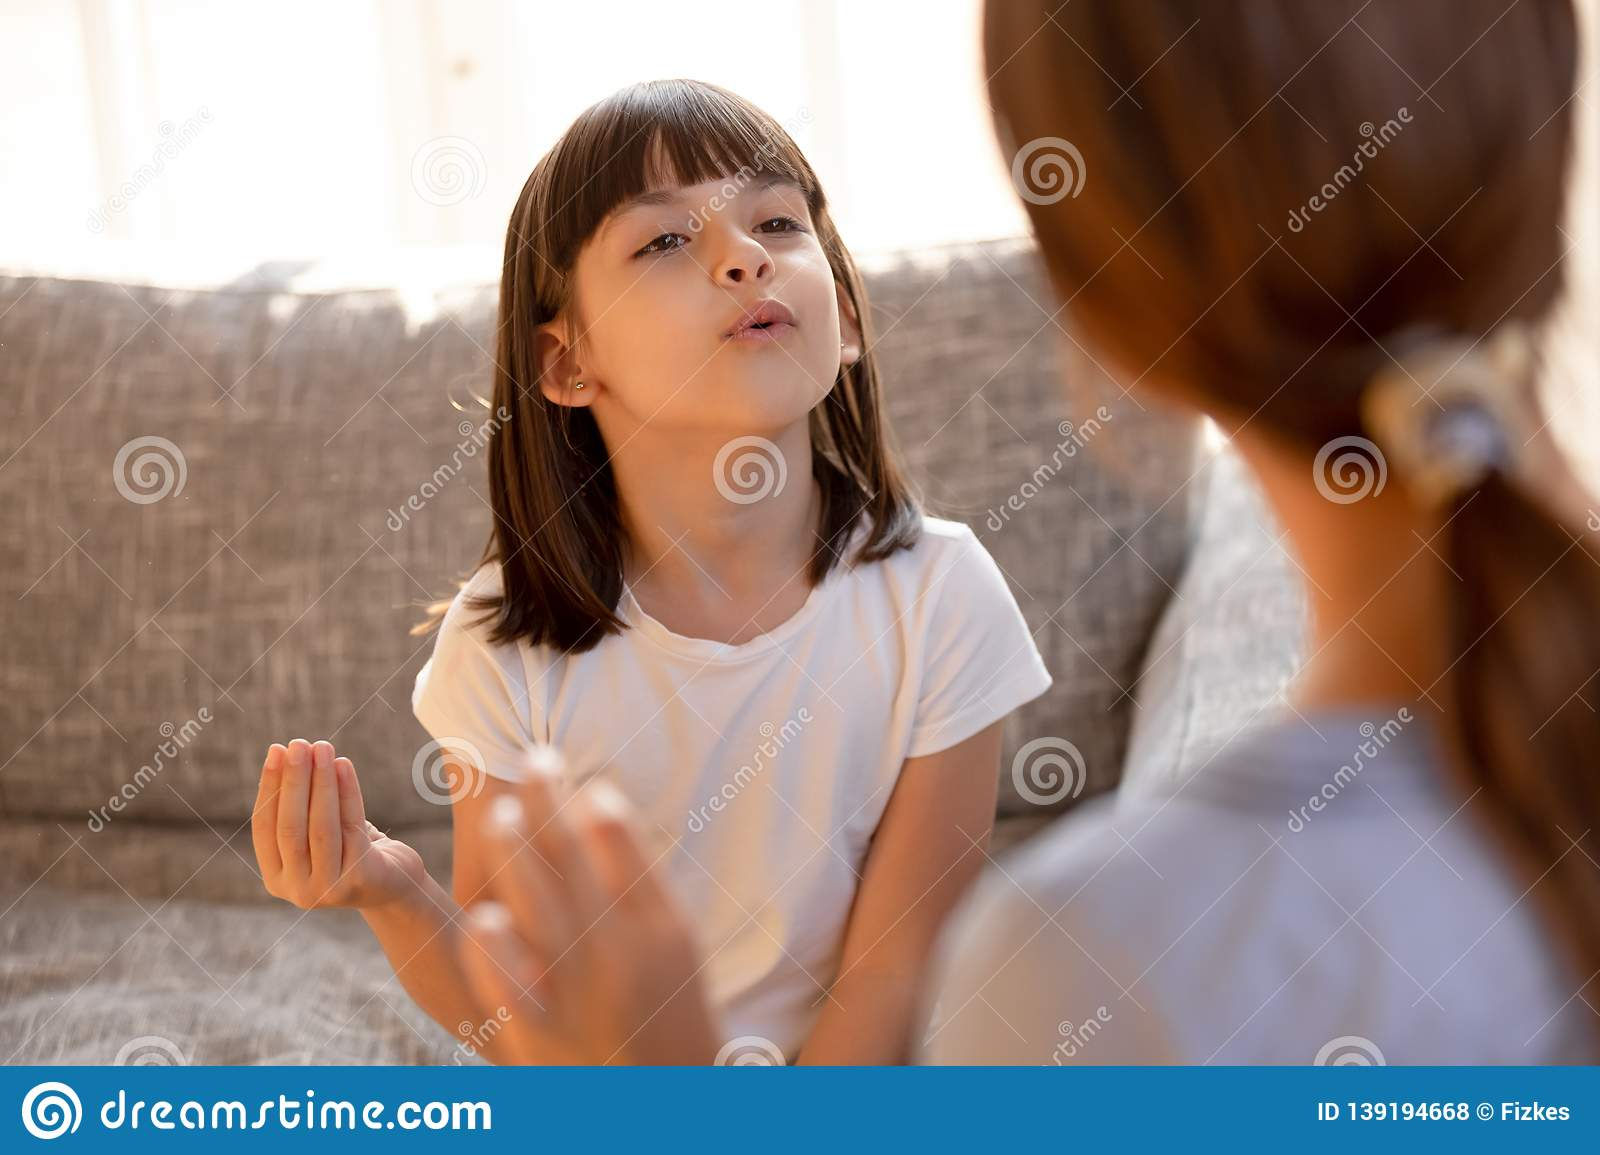 Cute stuttering child girl speaking doing exercises with speech therapist